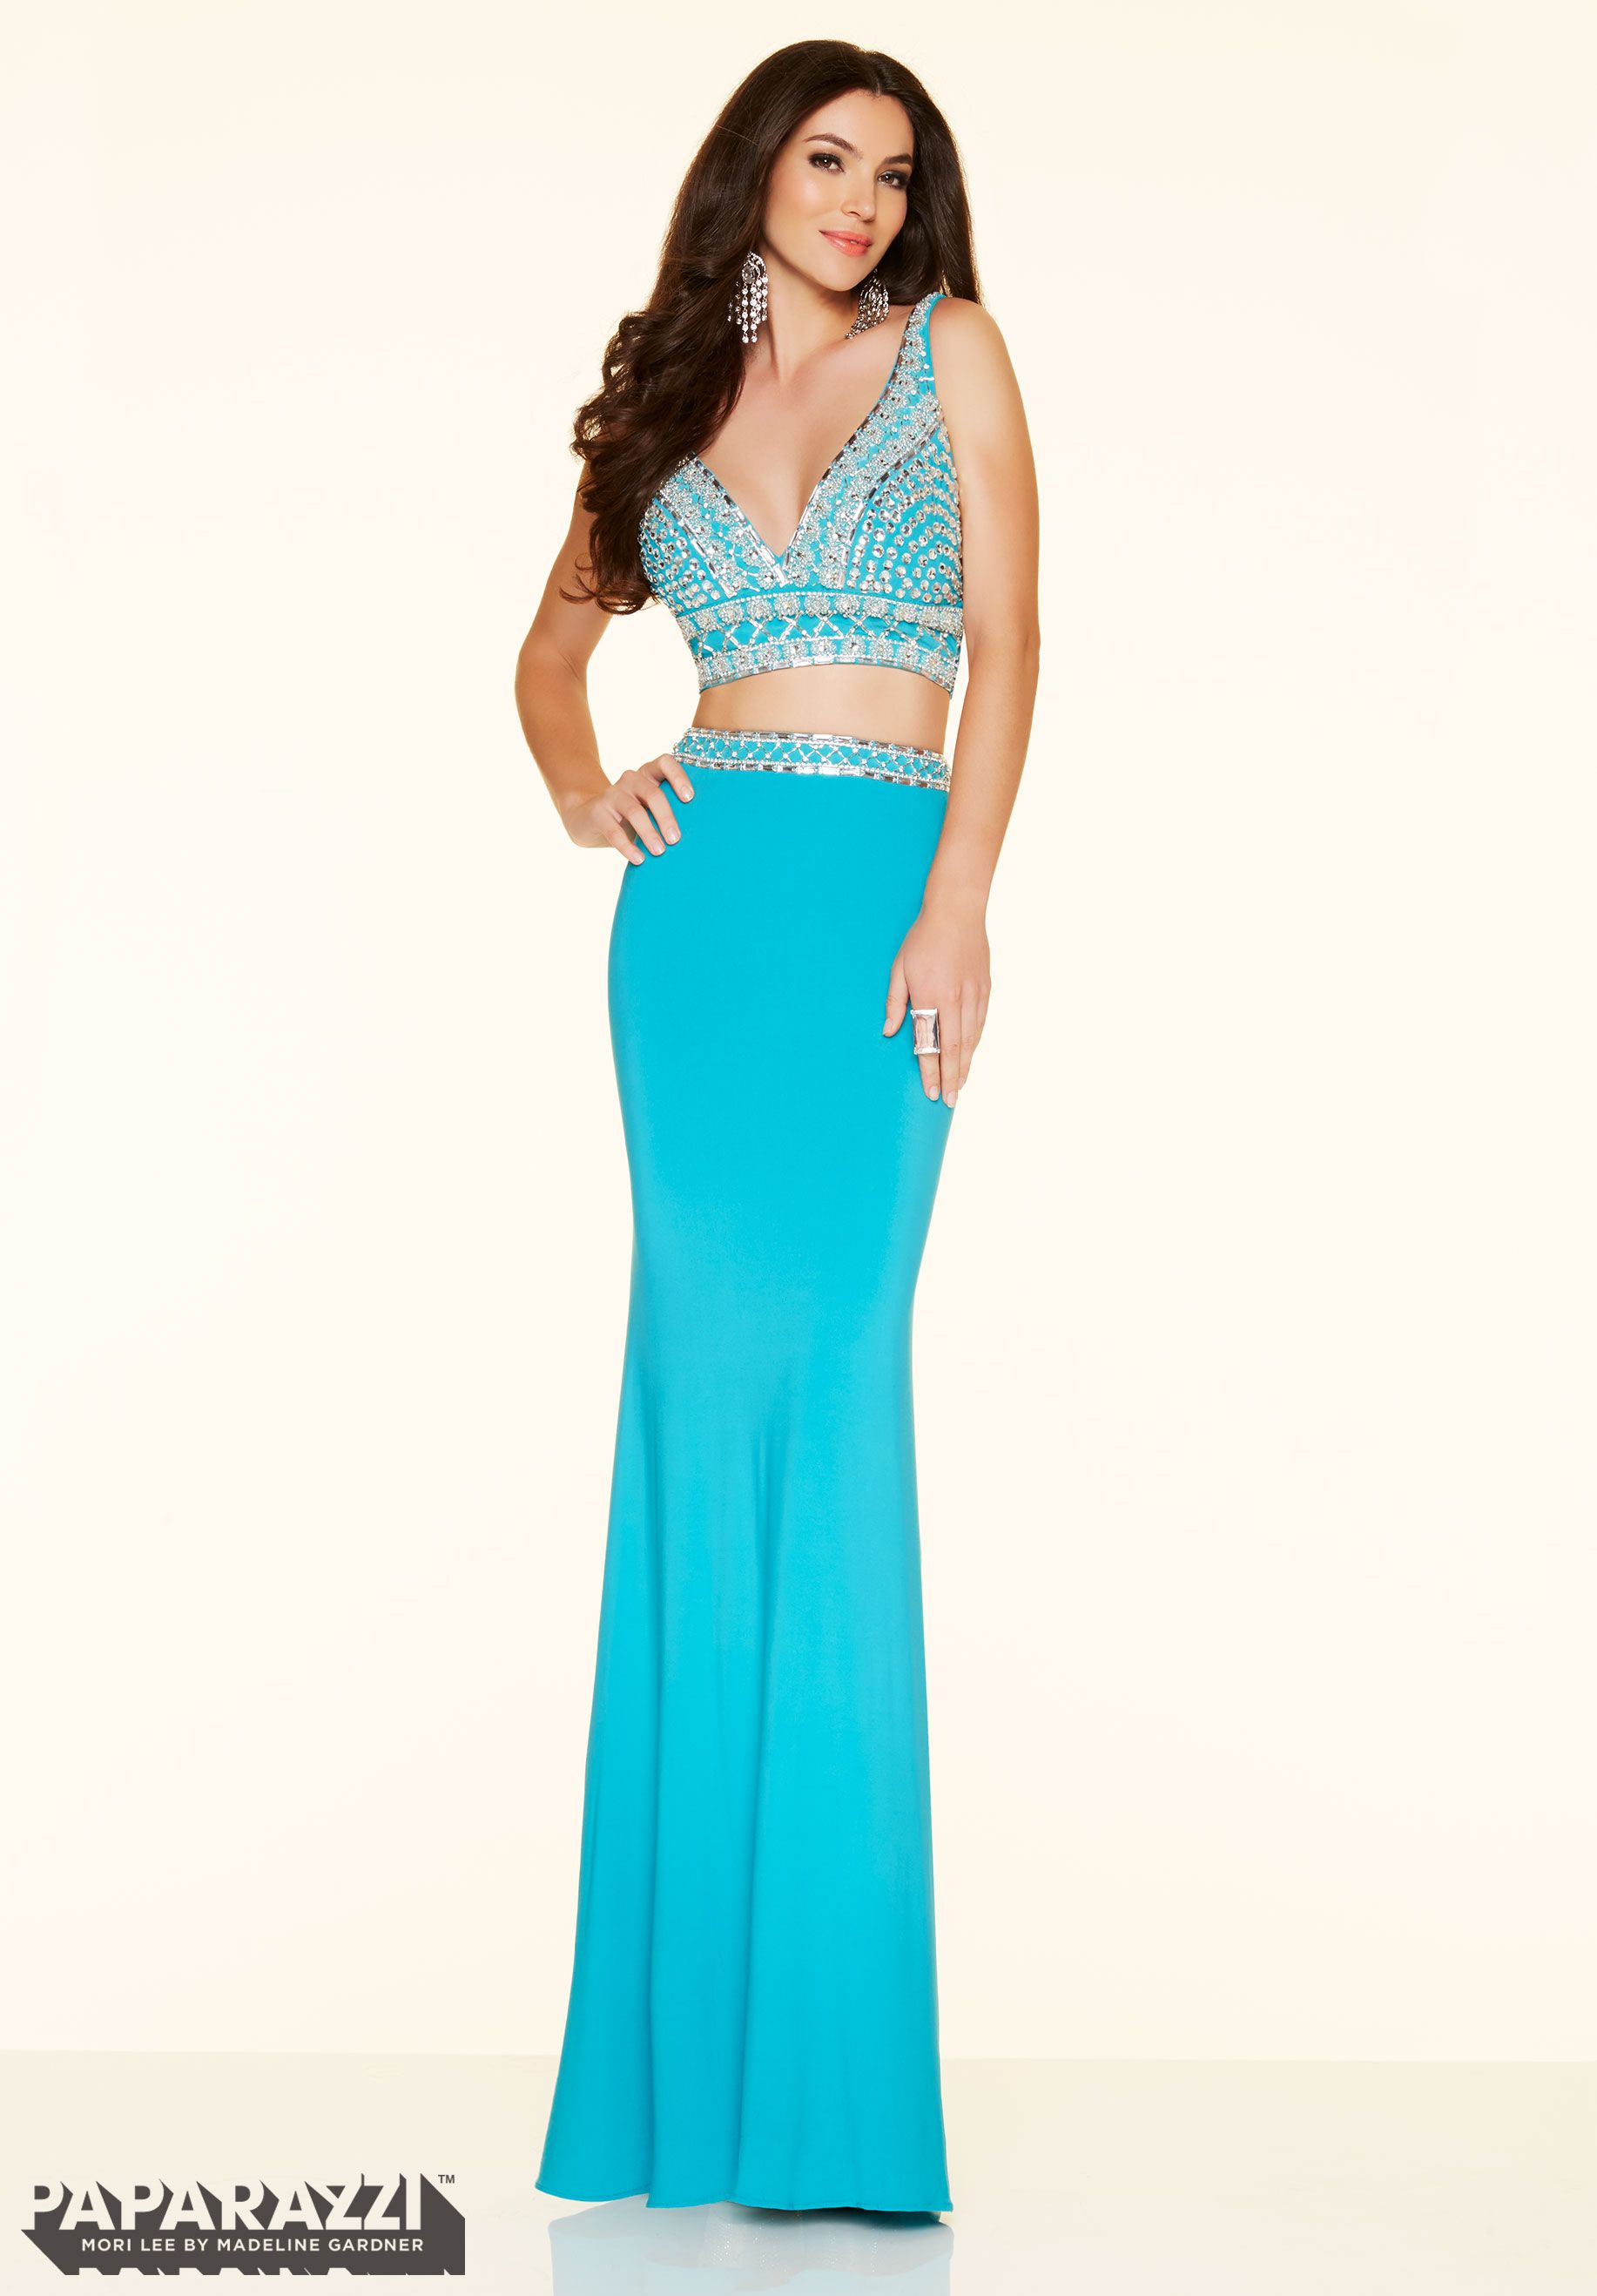 Prom Dresses by Paparazzi Prom - Dress Style 98121 | PROM ...